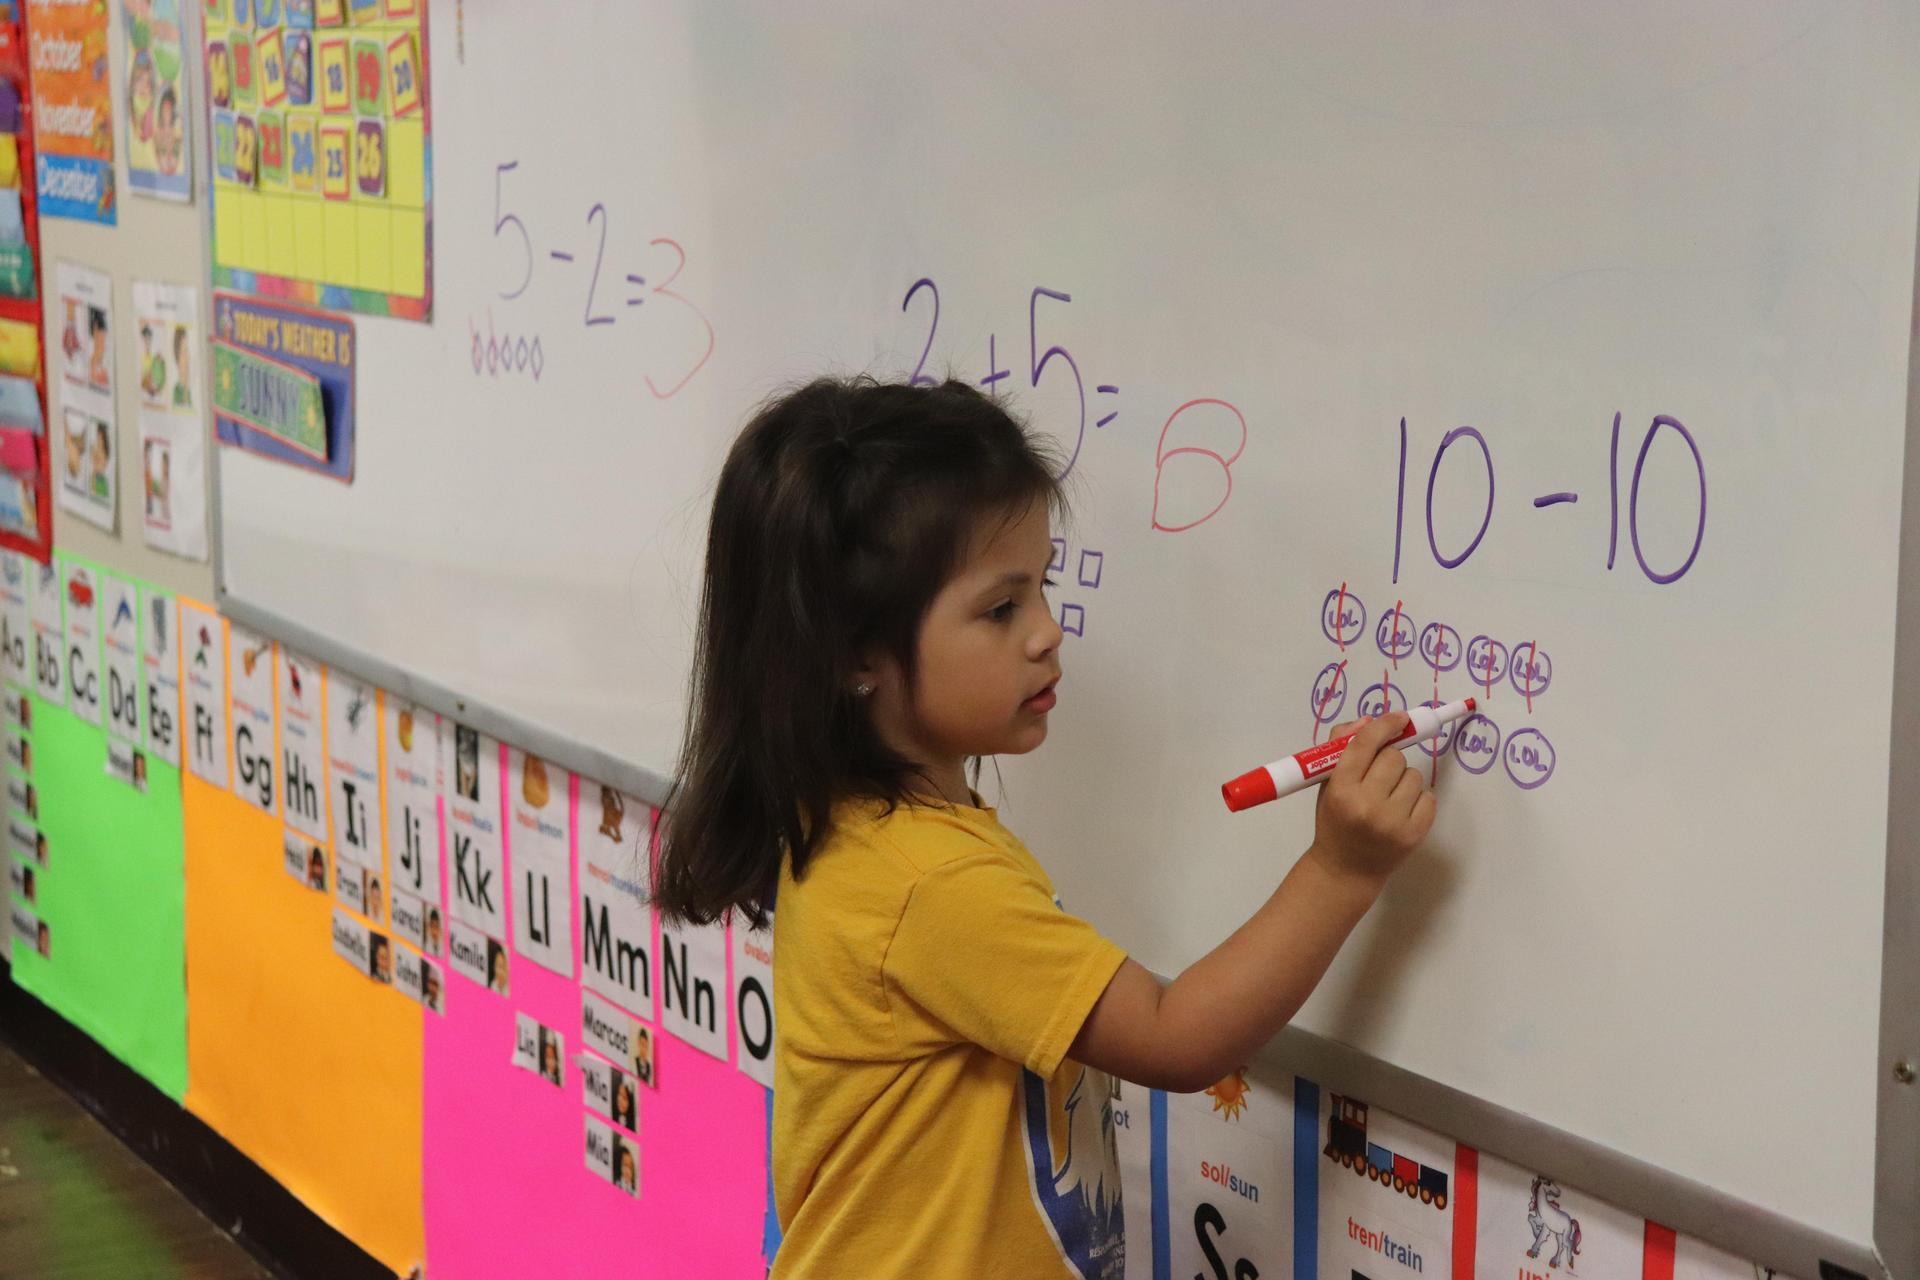 PreK student learning math problems